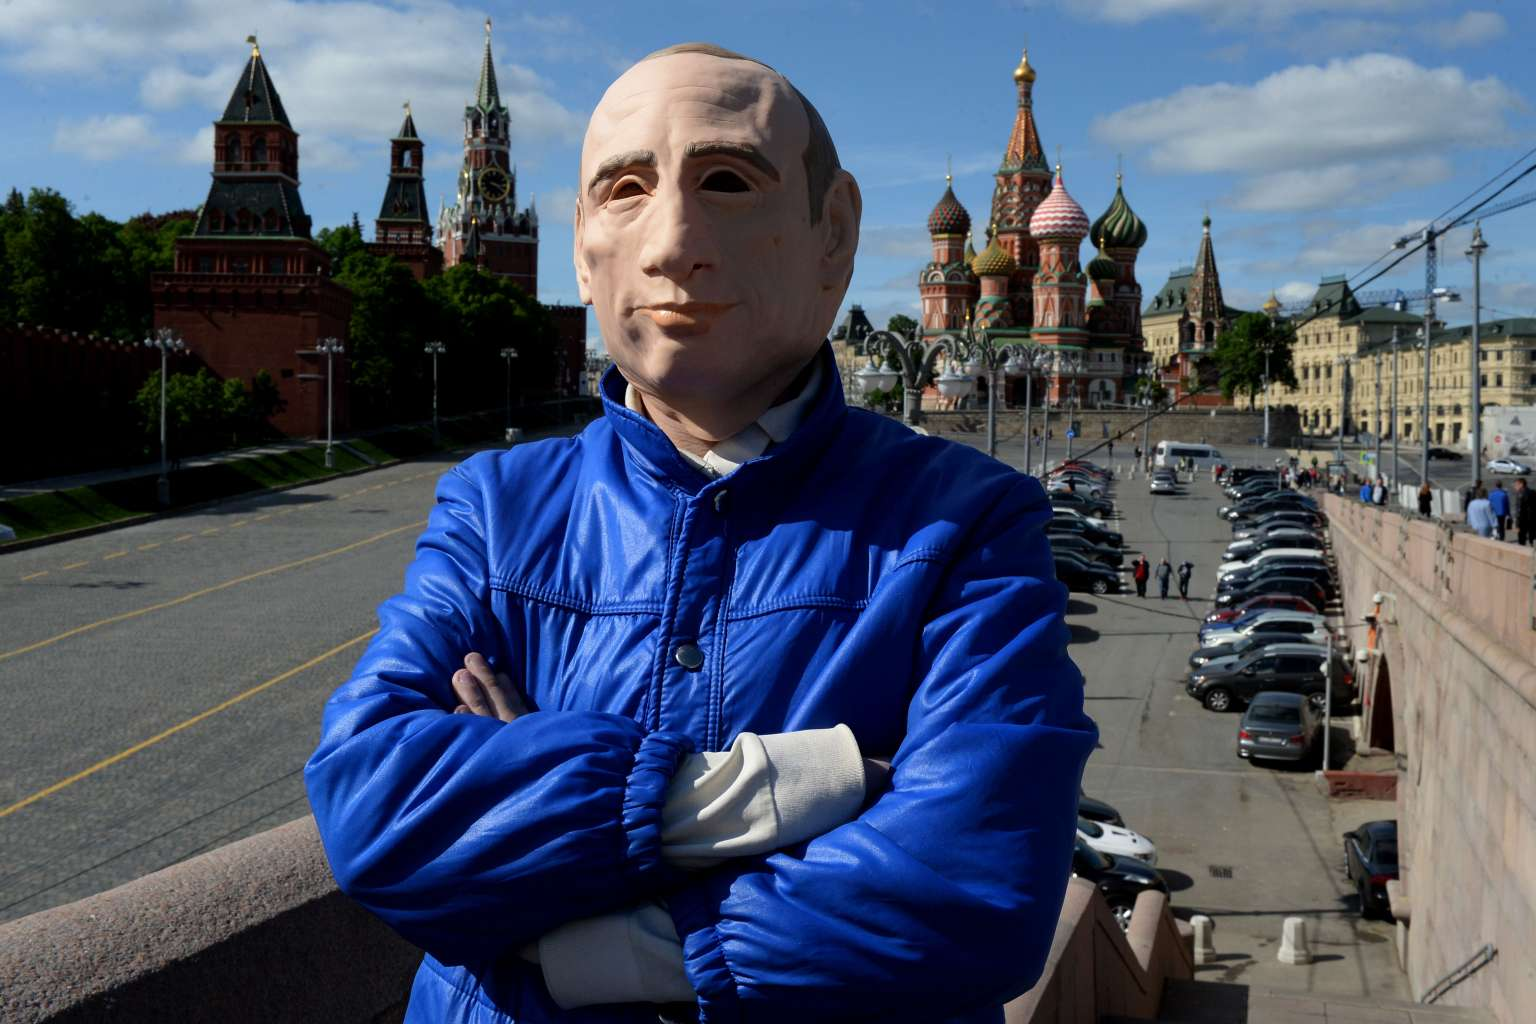 Putin-Mask Protester 'Safe' In Ukraine After Midnight Run From Russia